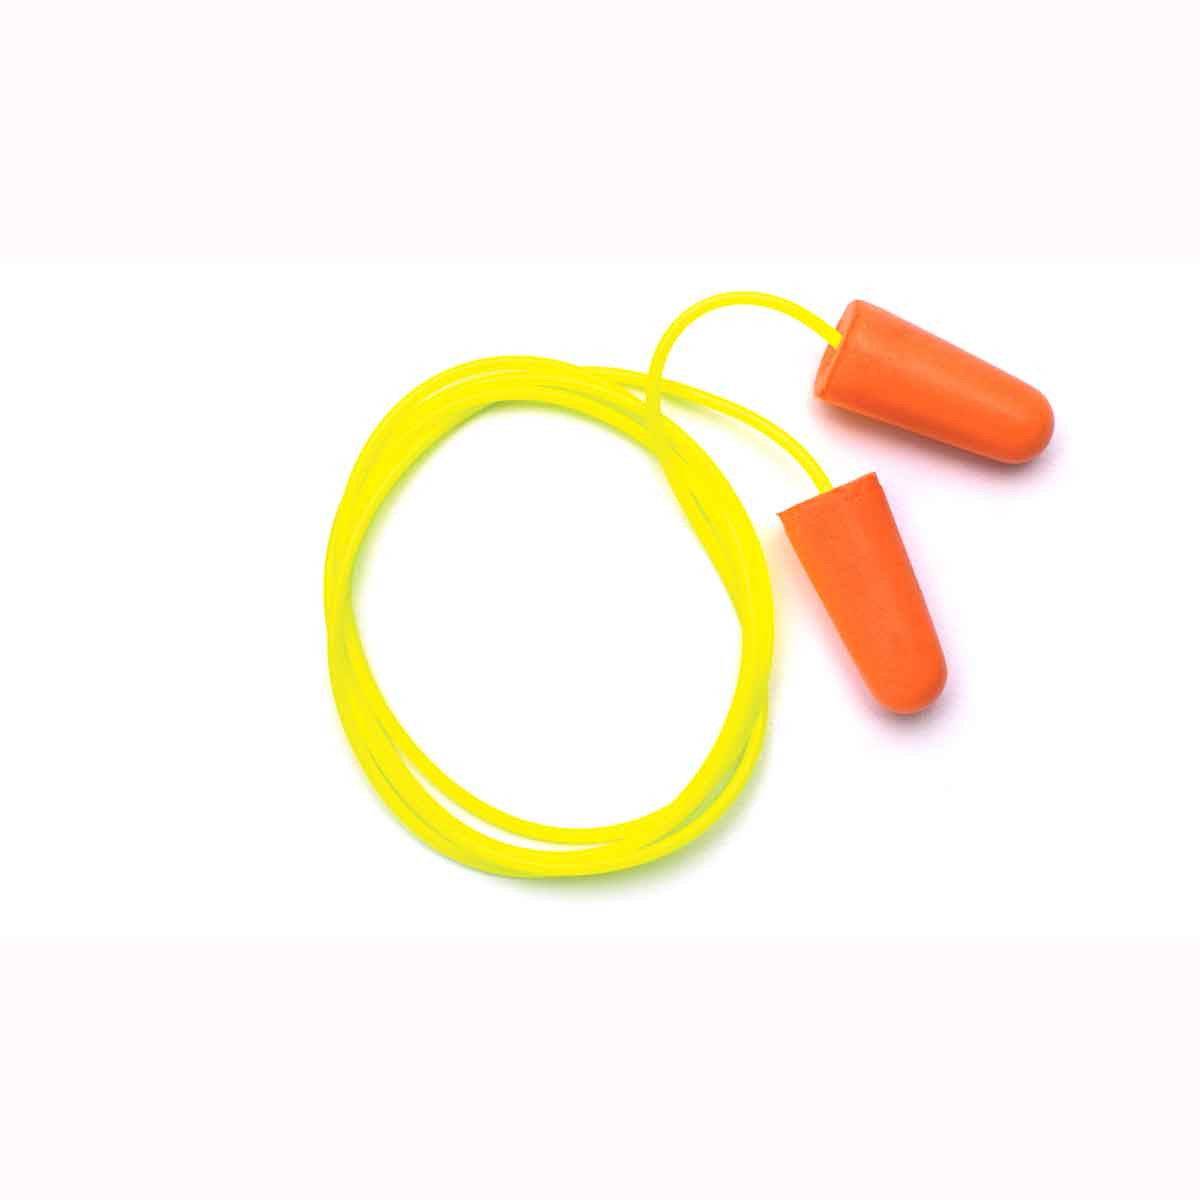 DP1001 Pyramex Disposable Corded Ear Plug